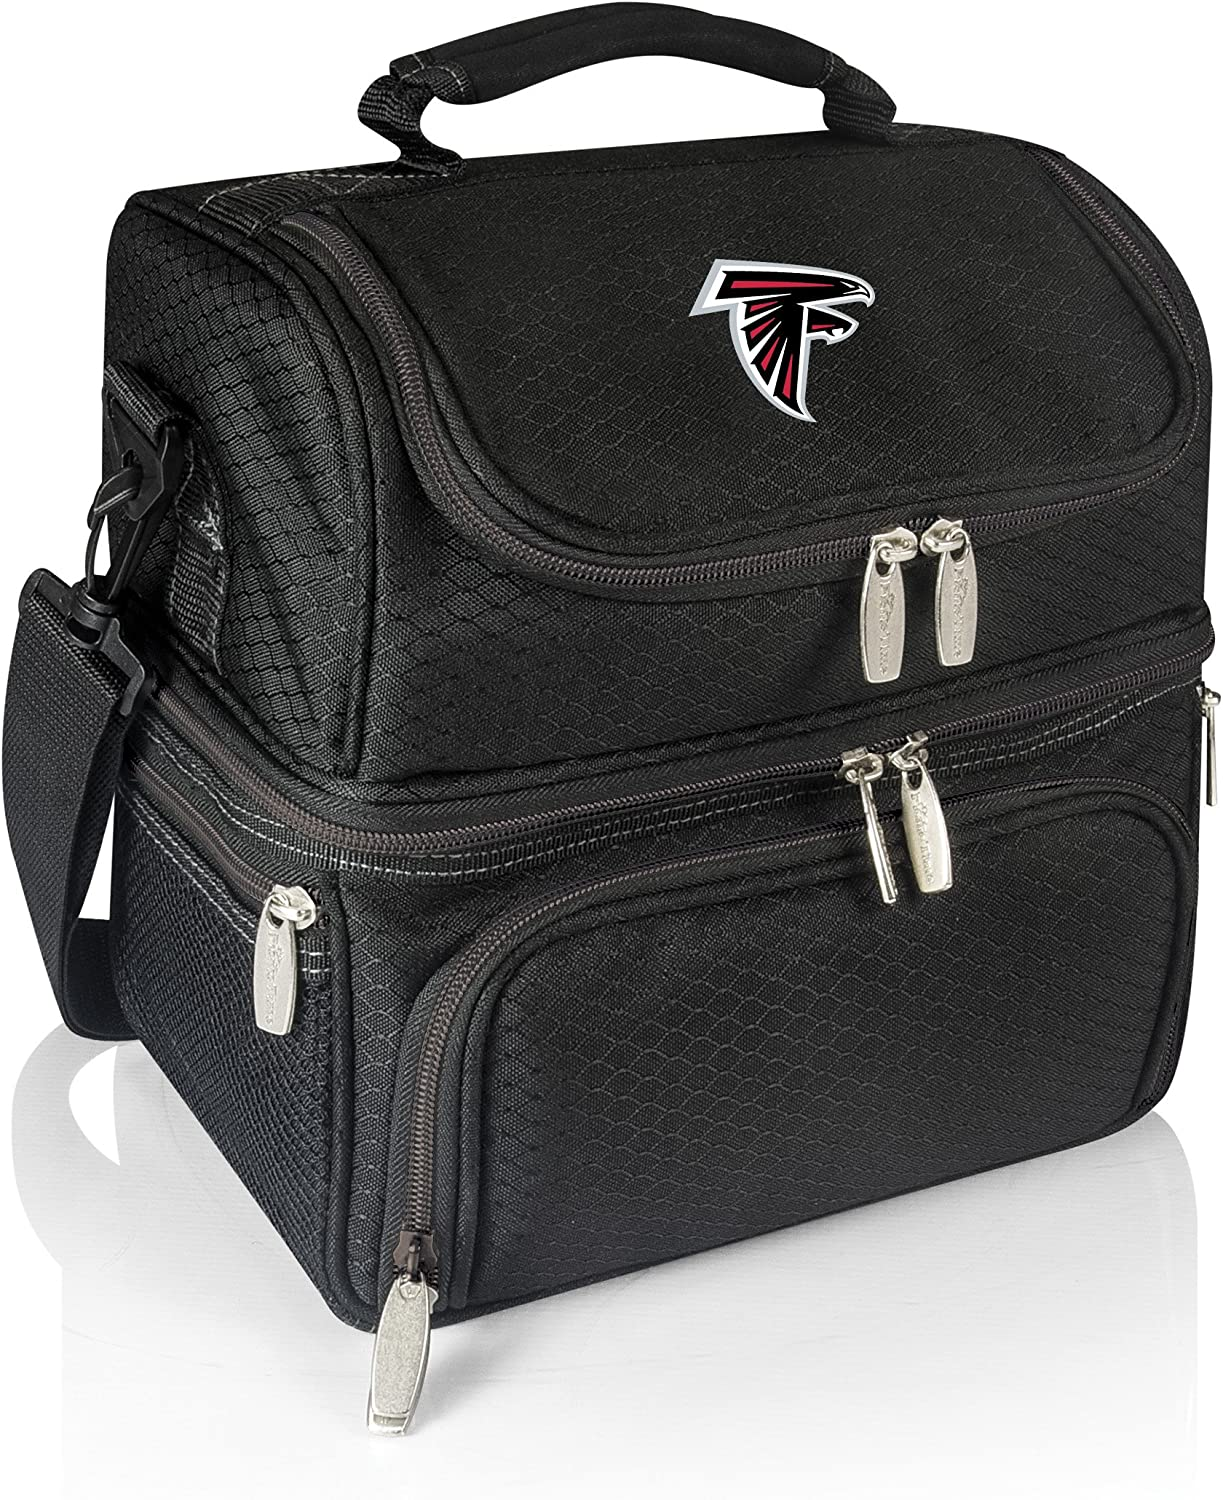 PICNIC TIME NFL Atlanta Falcons Pranzo Insulated Lunch Tote